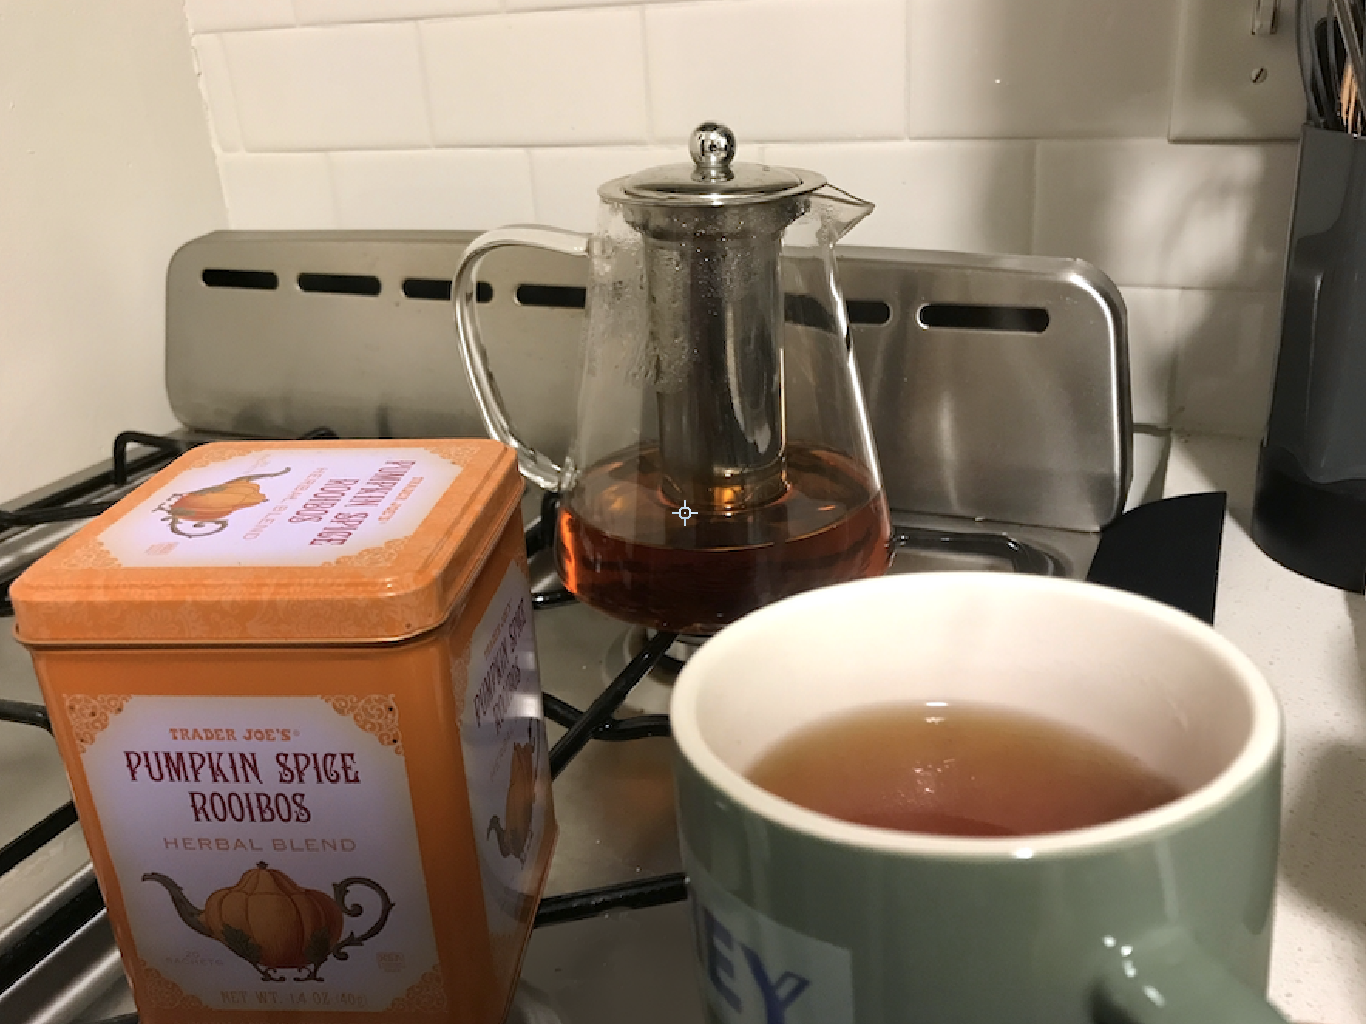 A tea pot with tea in it, the pumpkin spice rooibos container, and a mug of tea